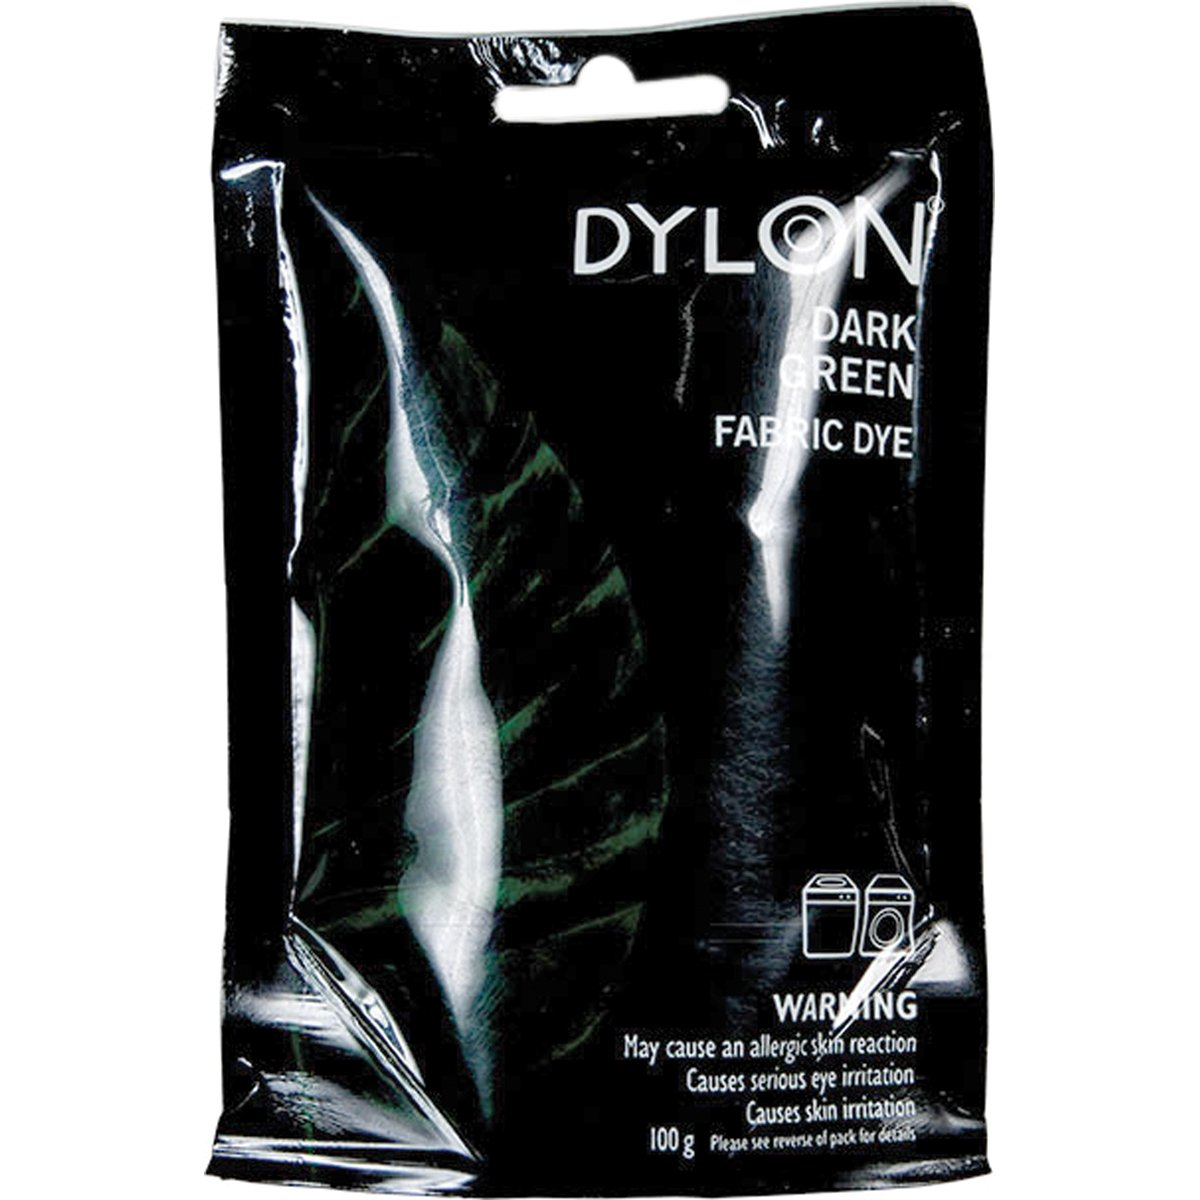 Dylon Fabric Dye Black Dylon Permanent Fabric Dye